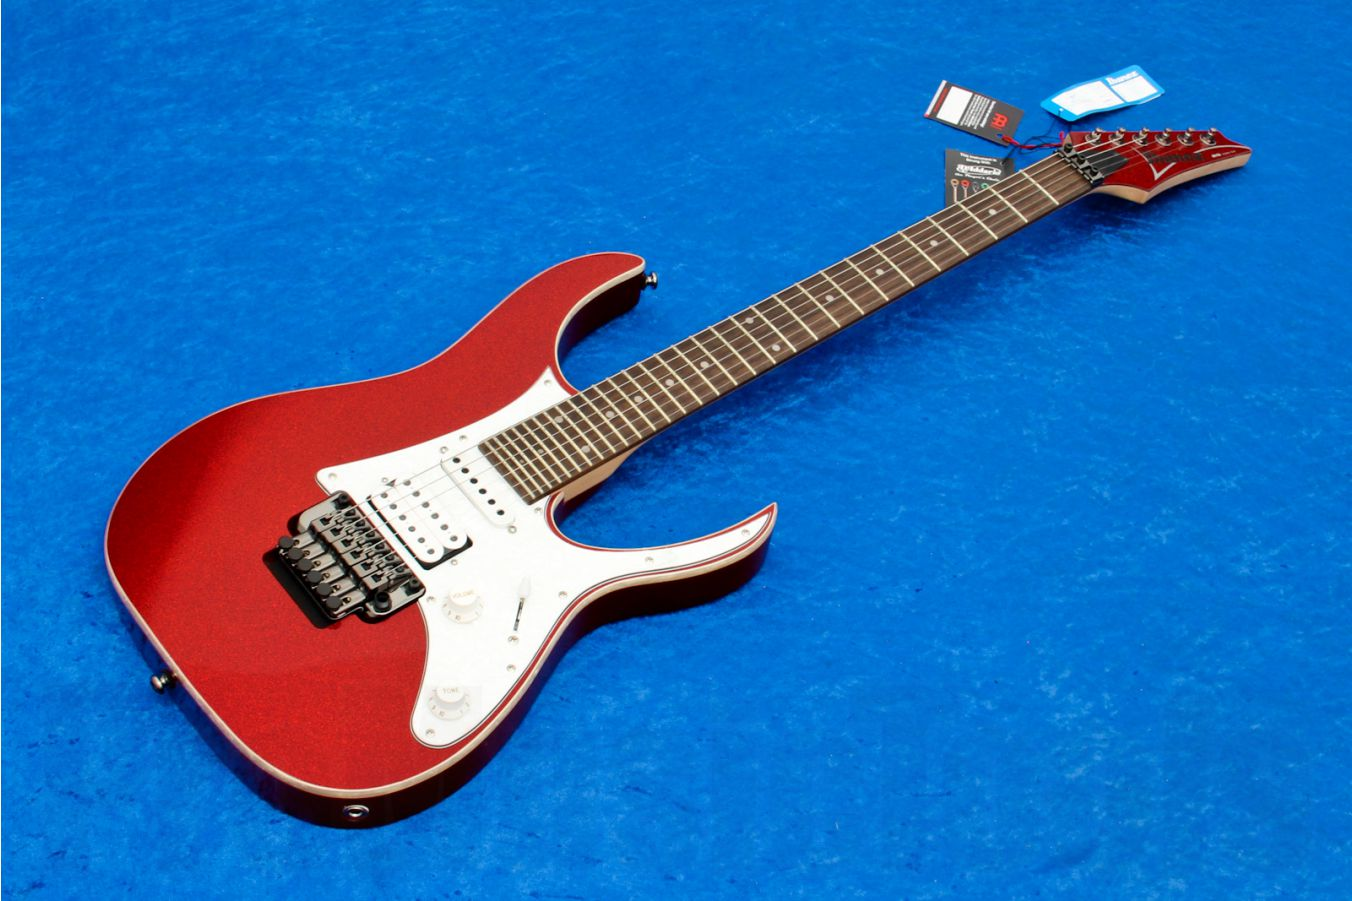 Ibanez RG550XH RSP - Red Sparkle - demo